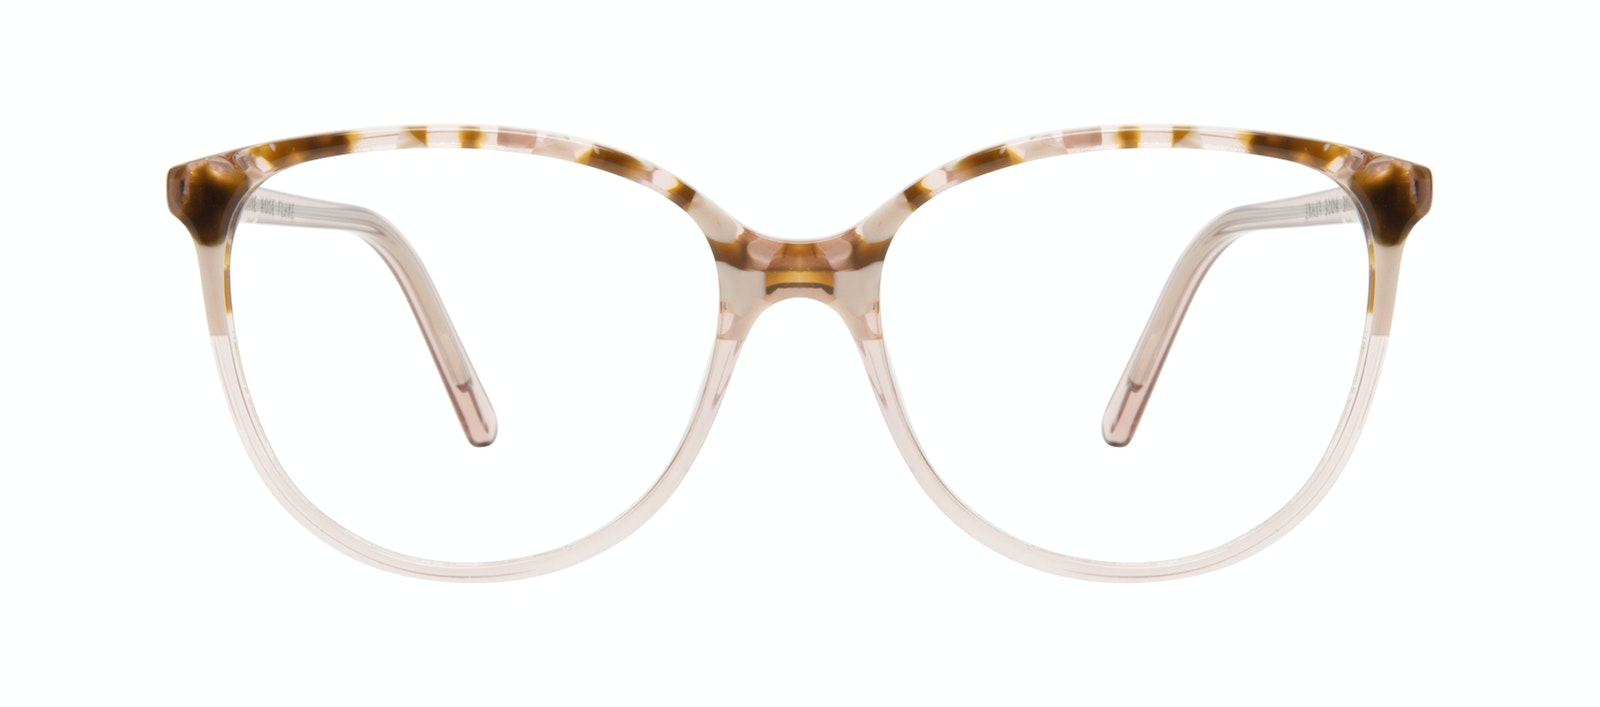 196a128b5e8a Affordable Fashion Glasses Round Eyeglasses Women Imagine Rose Flake Front